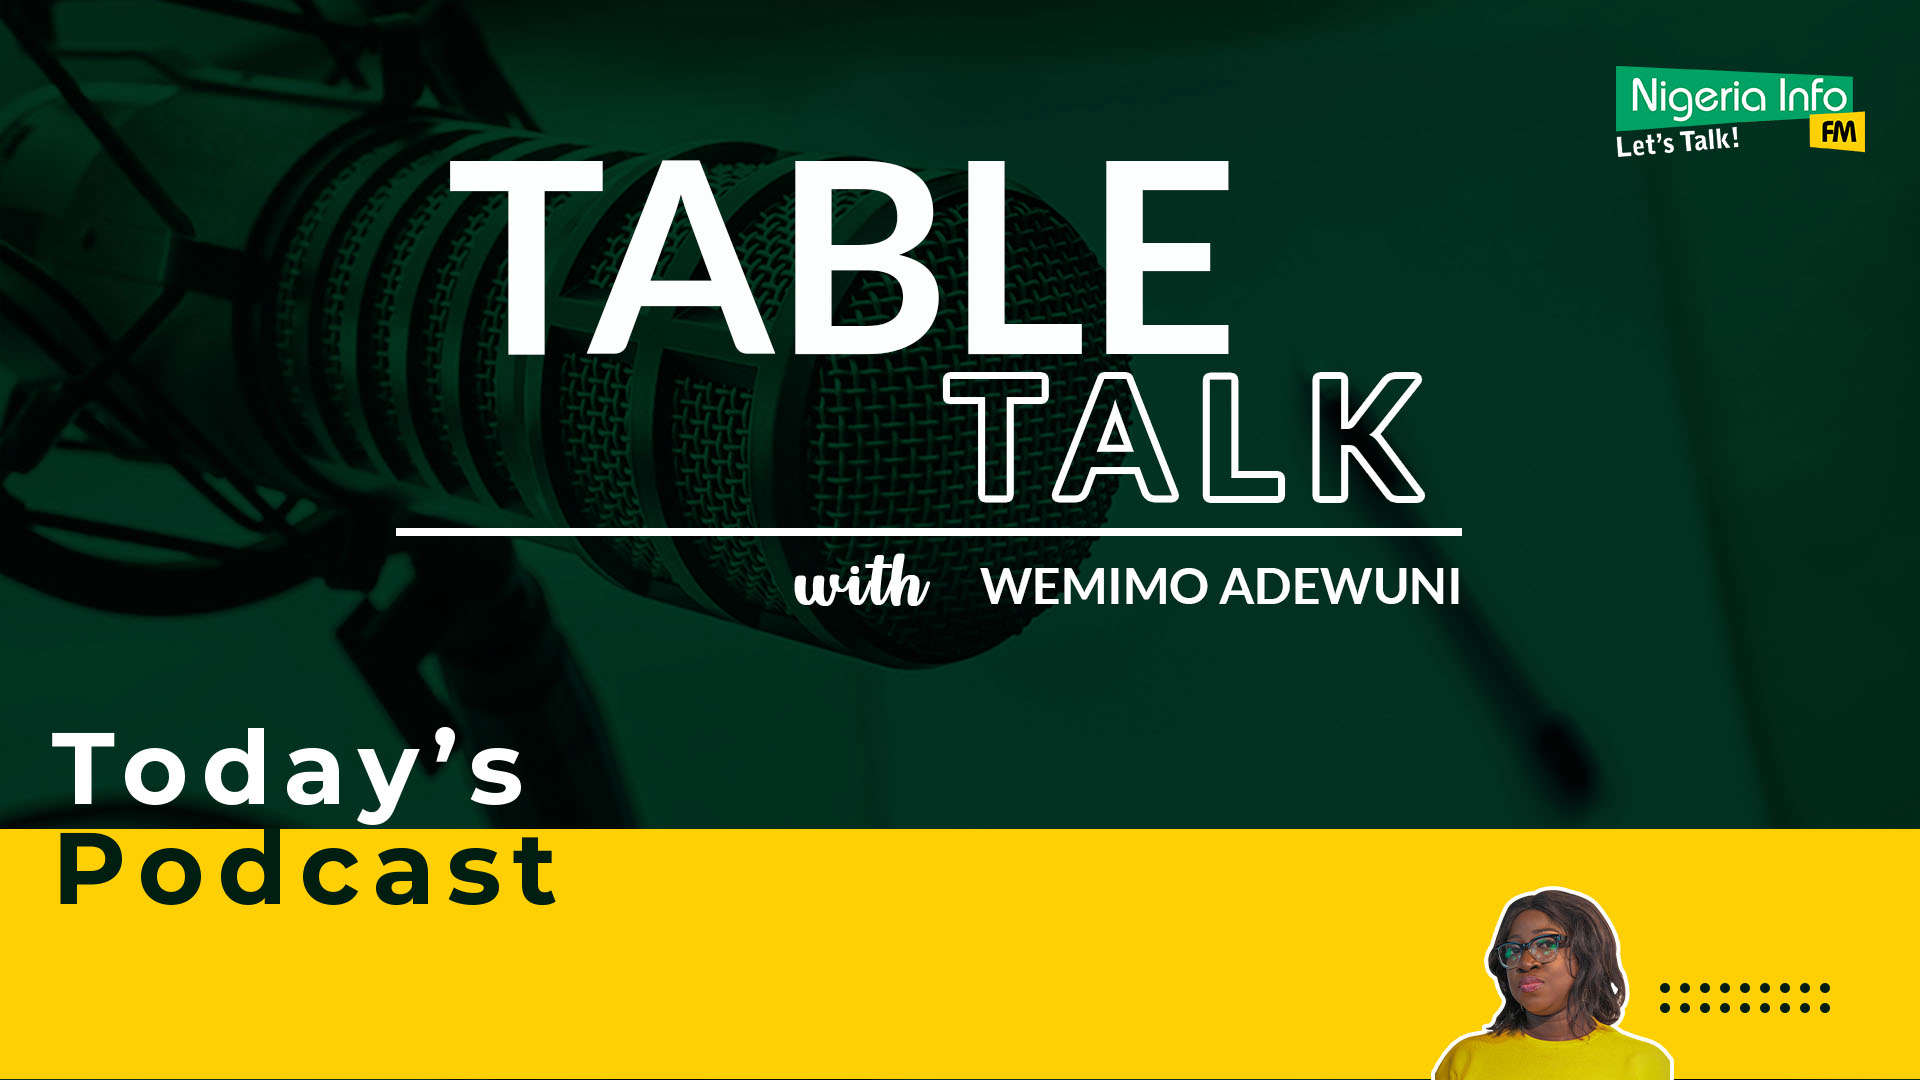 Table Talk With Wemimo